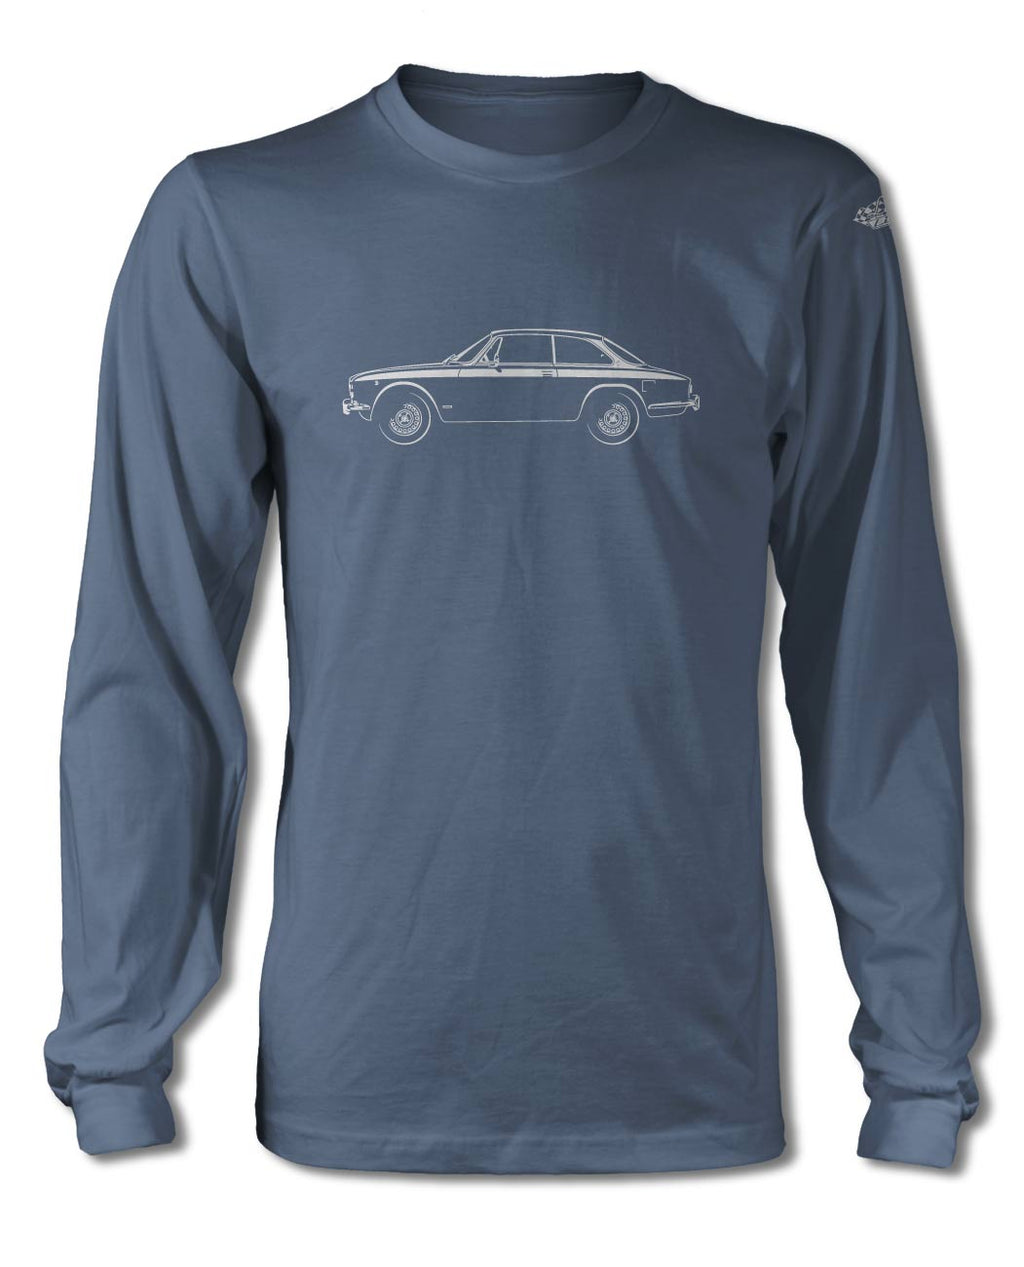 Alfa Romeo Guilia Sprint GT GTV T-Shirt - Long Sleeves - Side View